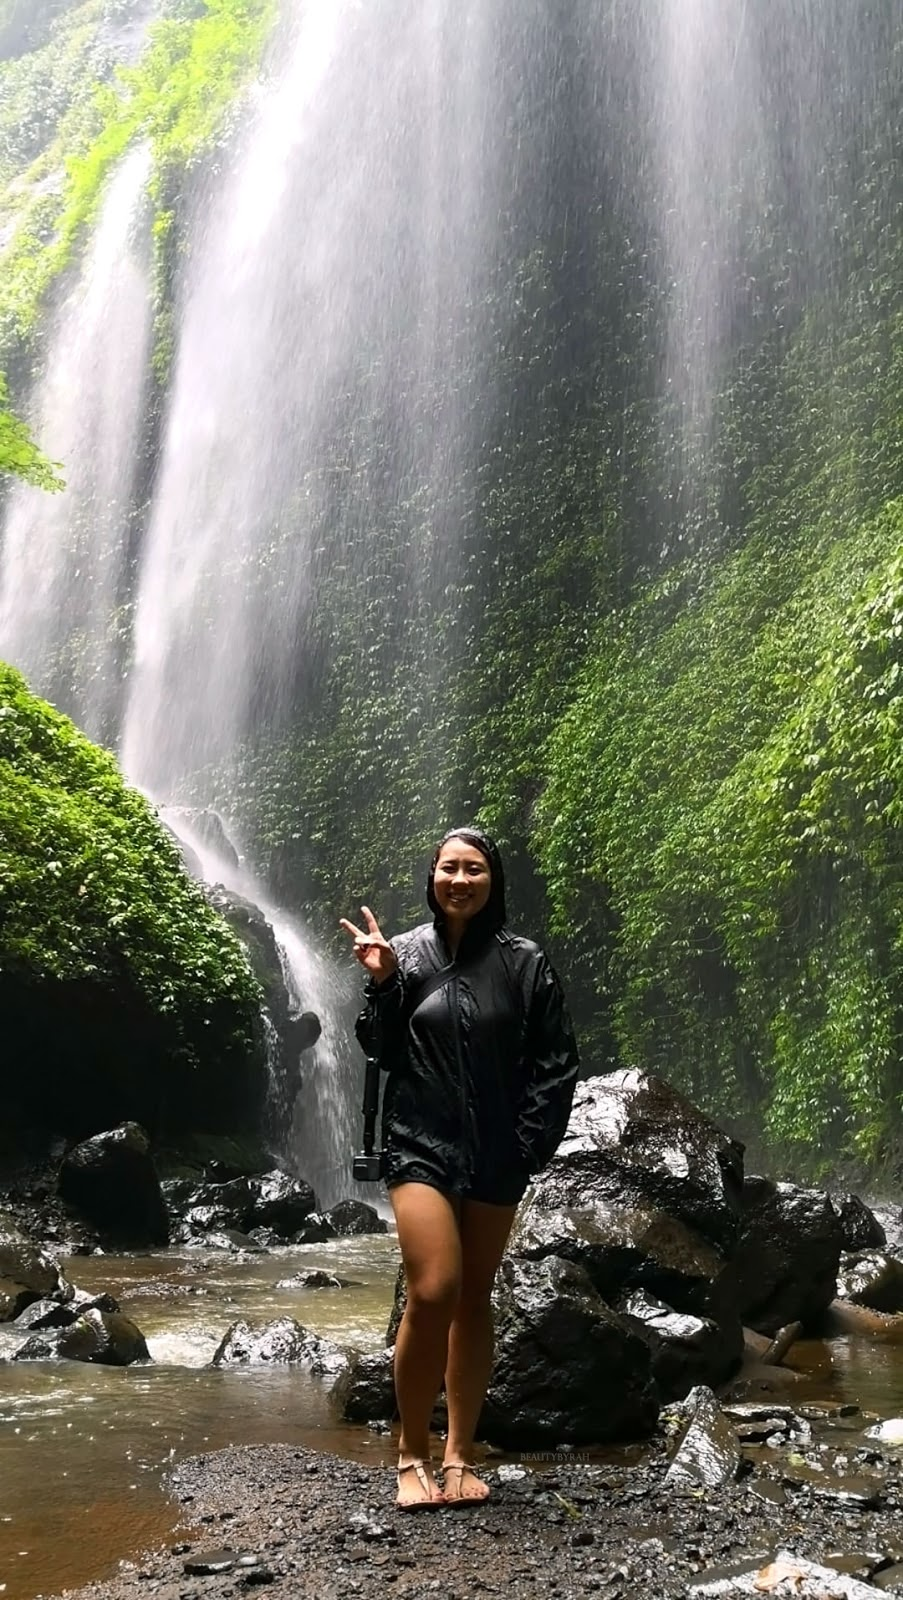 Madakaripura waterfall and Surabaya Travel Guide